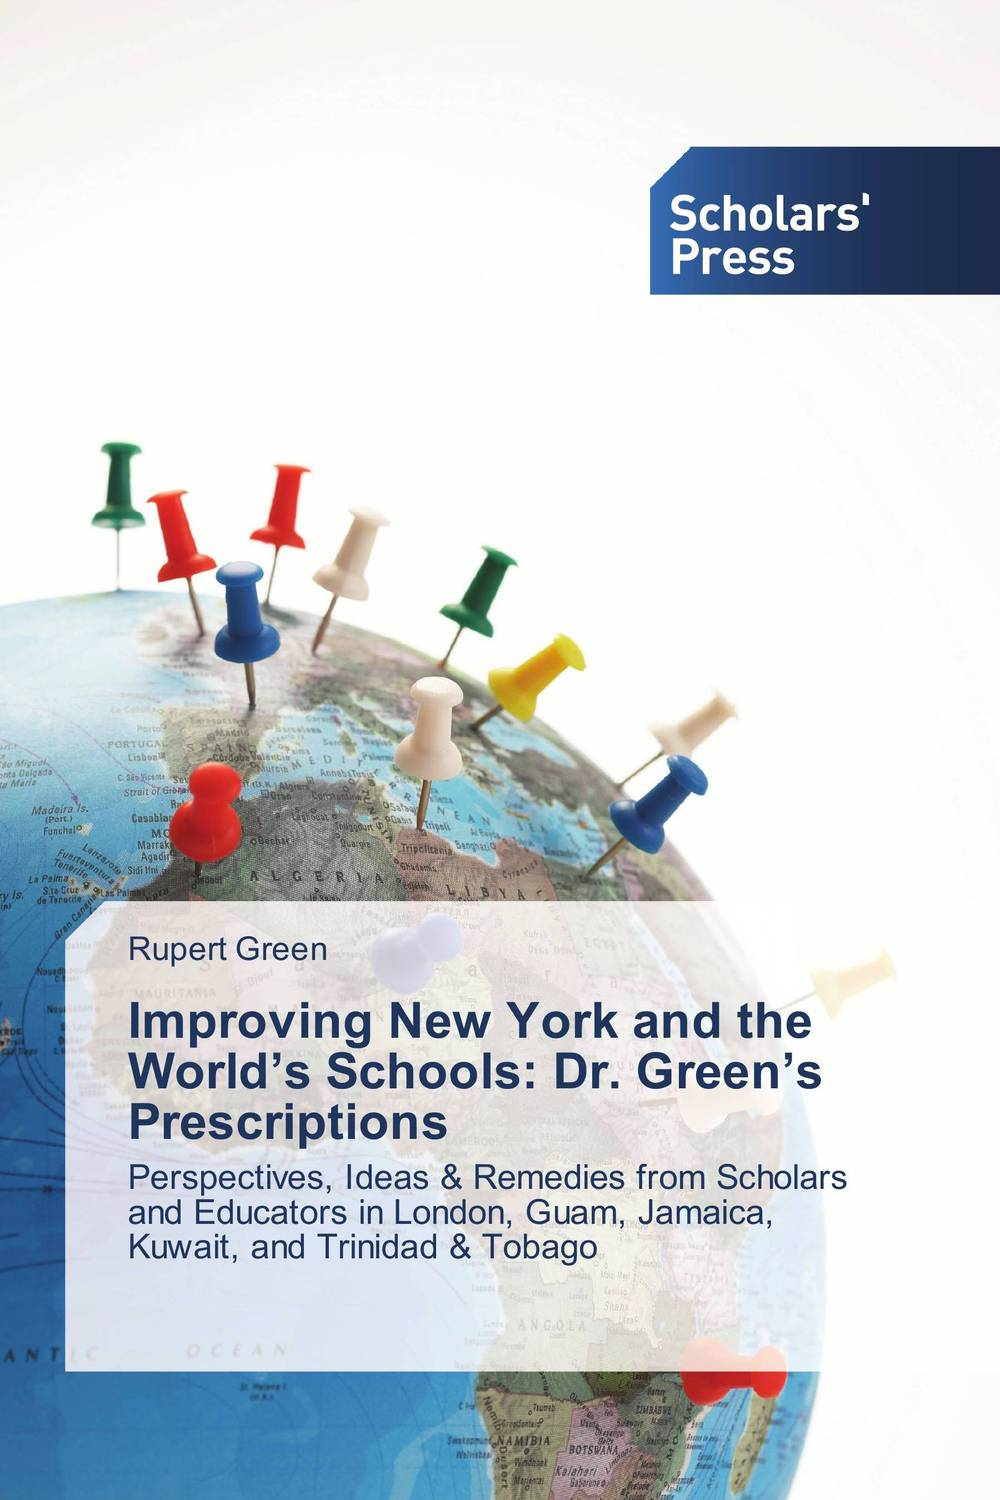 Improving New York and the World's Schools: Dr. Green's Prescriptions сумки p a l new york сумки